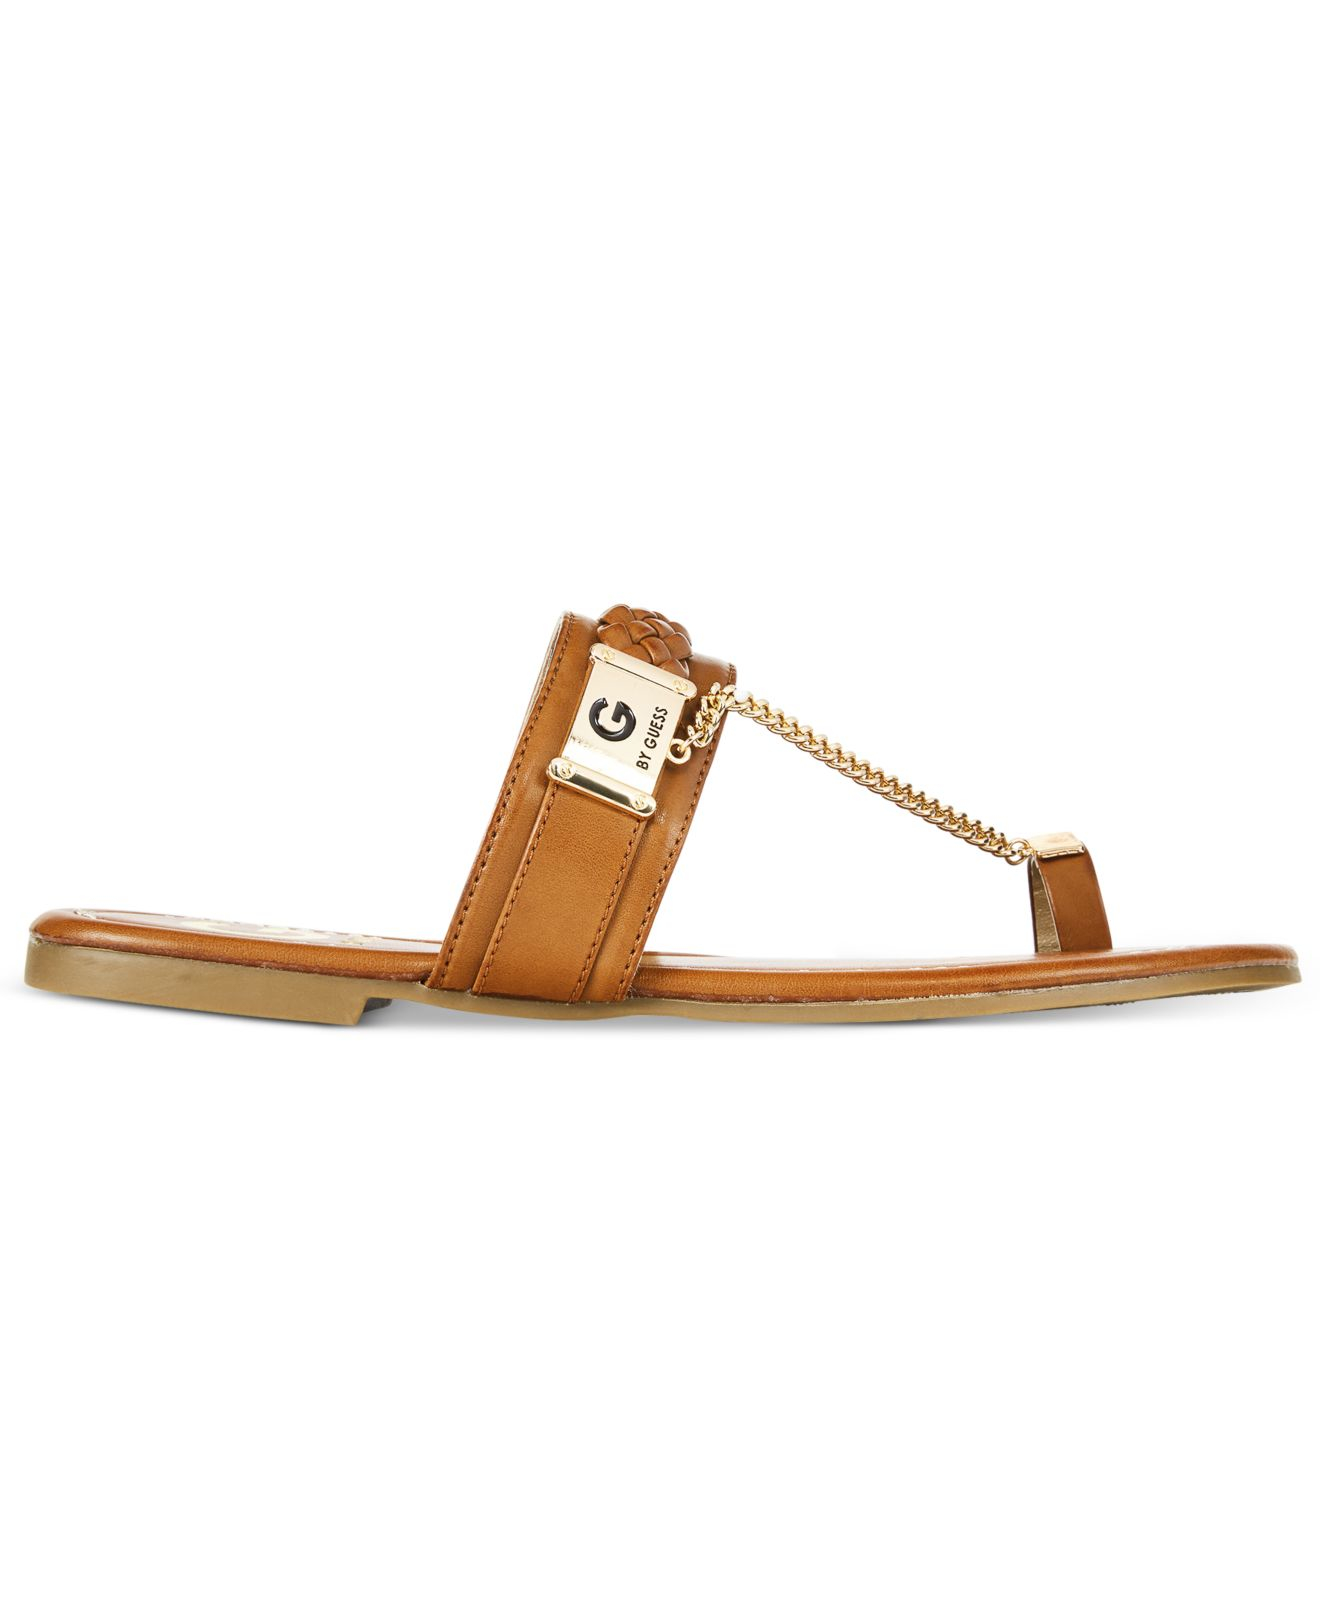 G By Guess Limitt Chained Flat Sandals In Brown Light